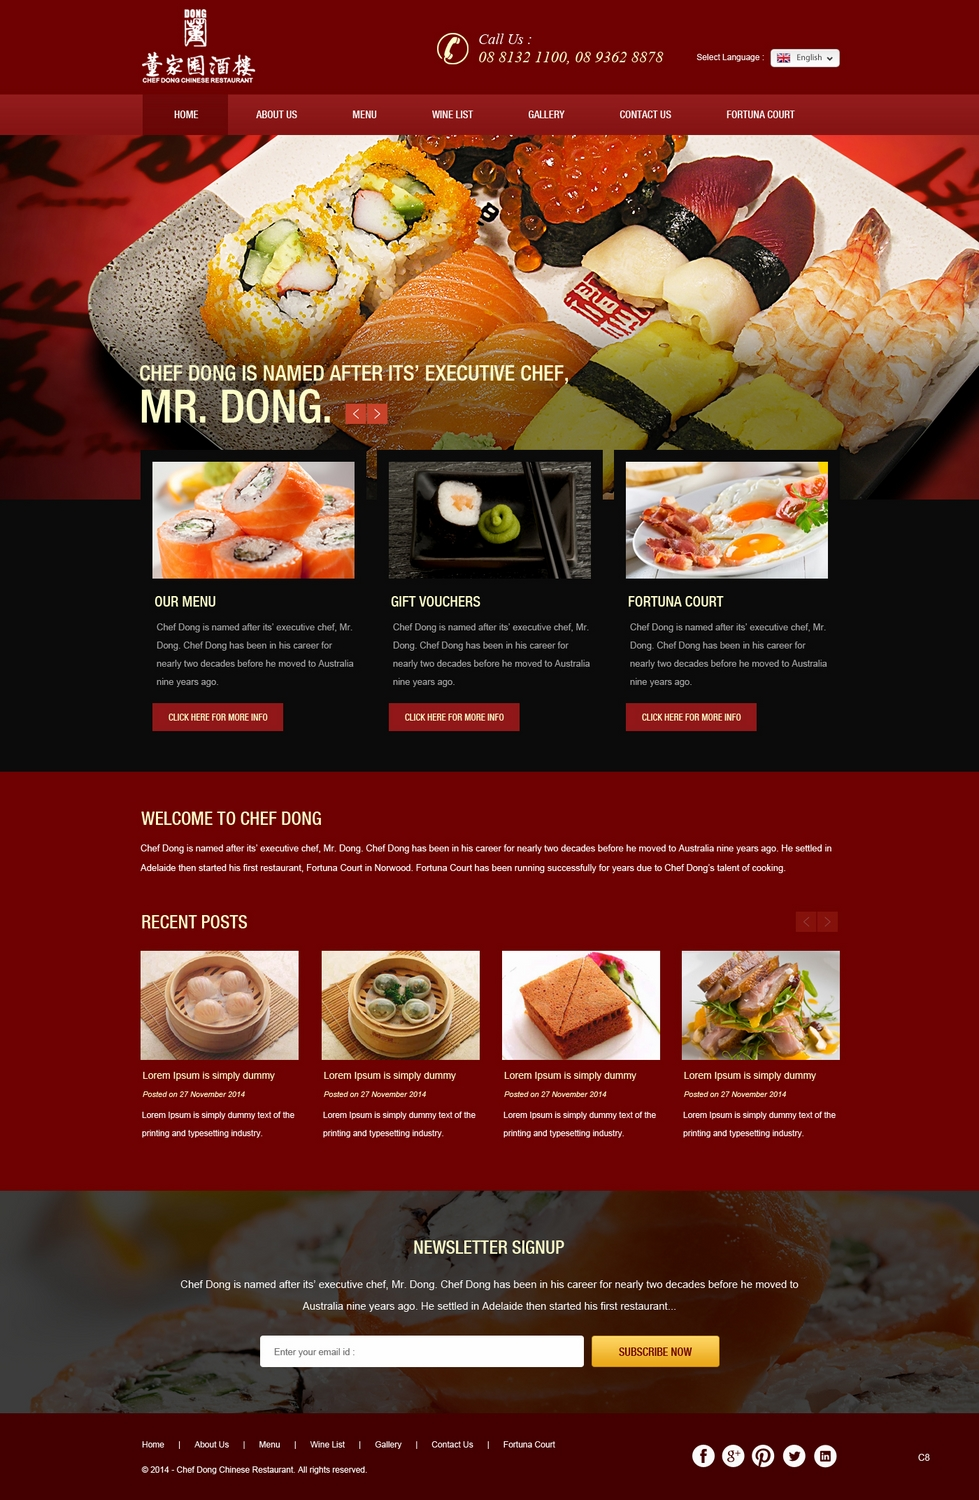 alfa img showing chinese restaurant website design